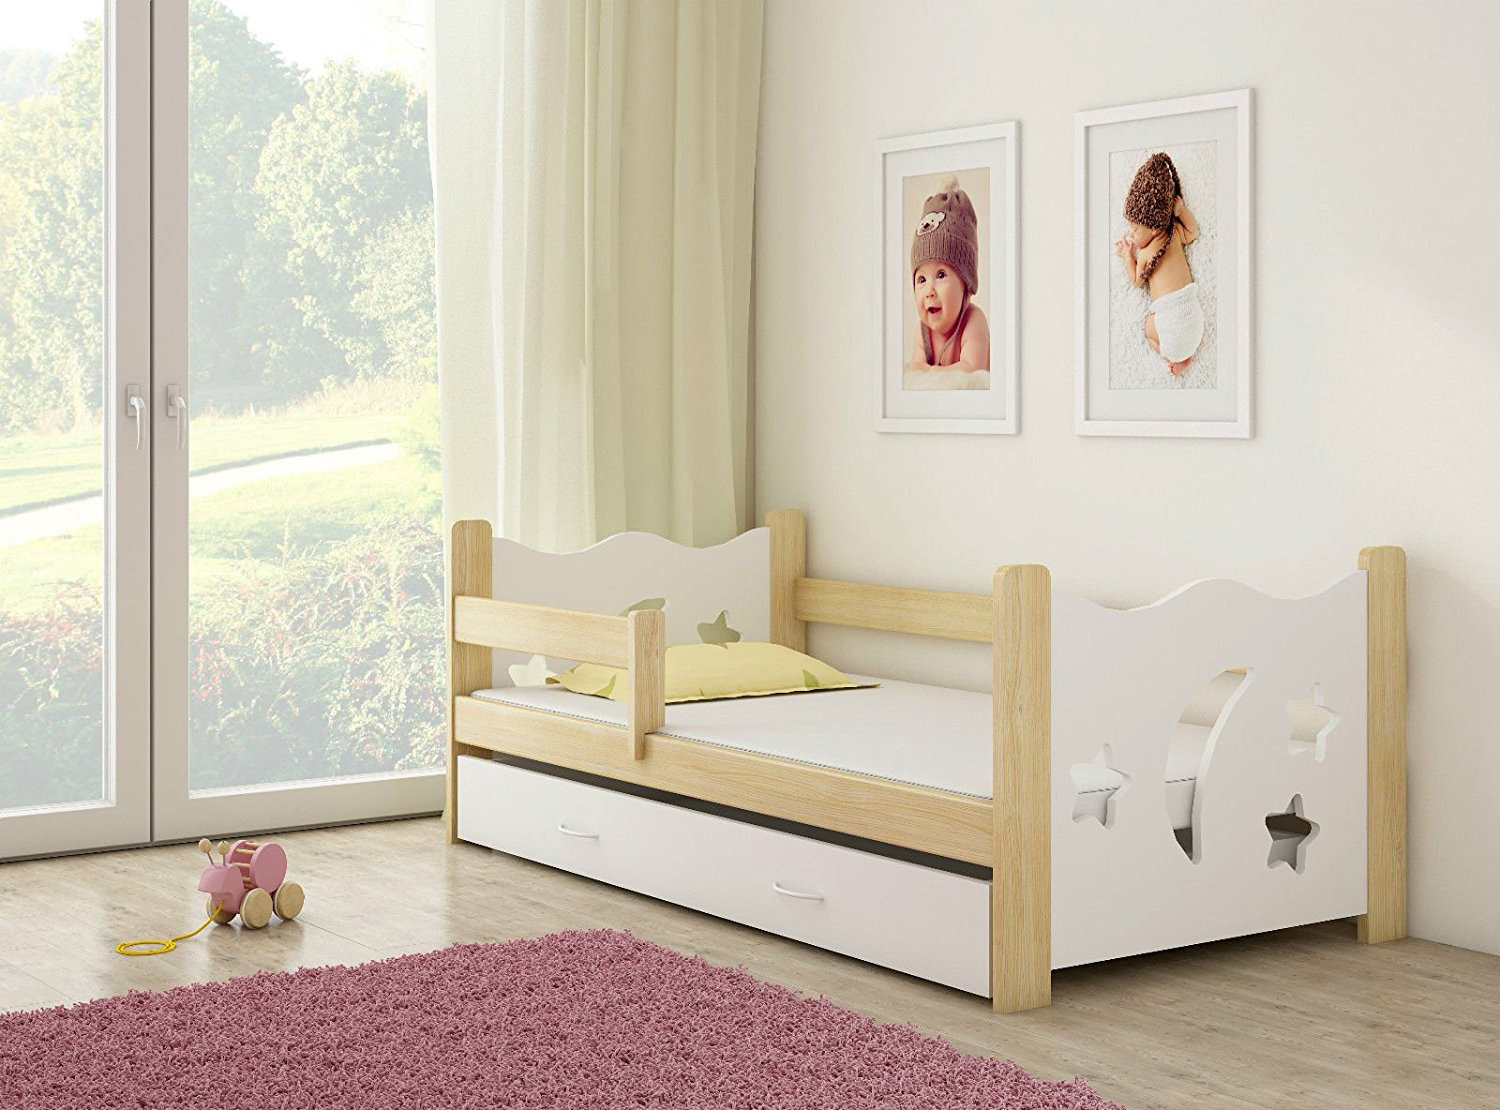 clamaro sternenhimmel kinderbett mit matratze 80x160 cm jugendbett baby ebay. Black Bedroom Furniture Sets. Home Design Ideas